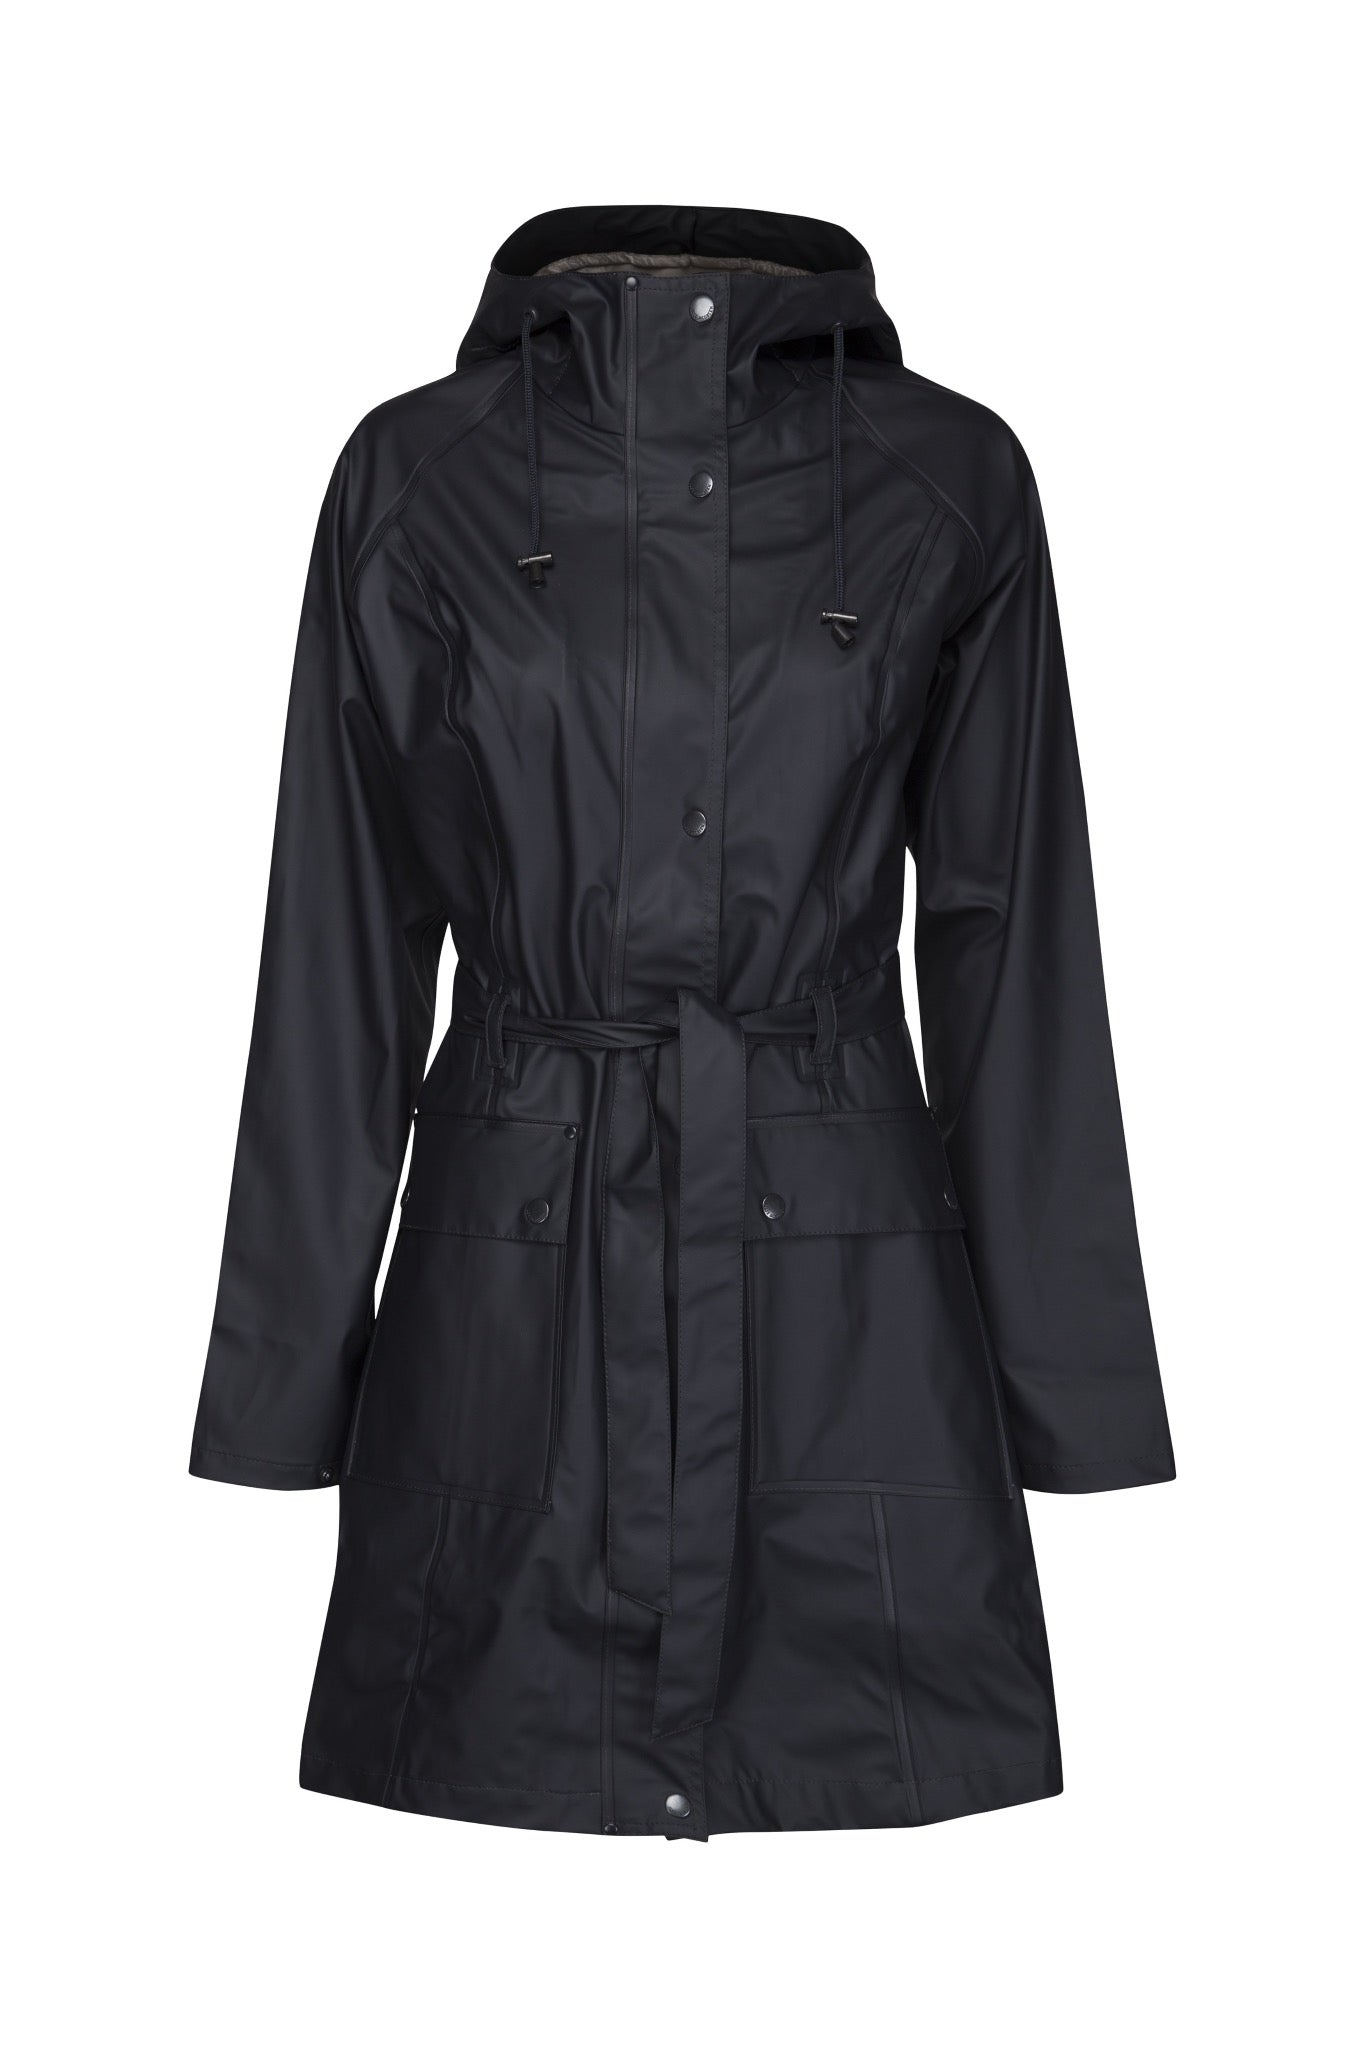 Ilse Jacobsen Rain70 Rain 70 rain coat, trench style with belt, patch pockets and functional hood. Dark Indigo - deep navy.